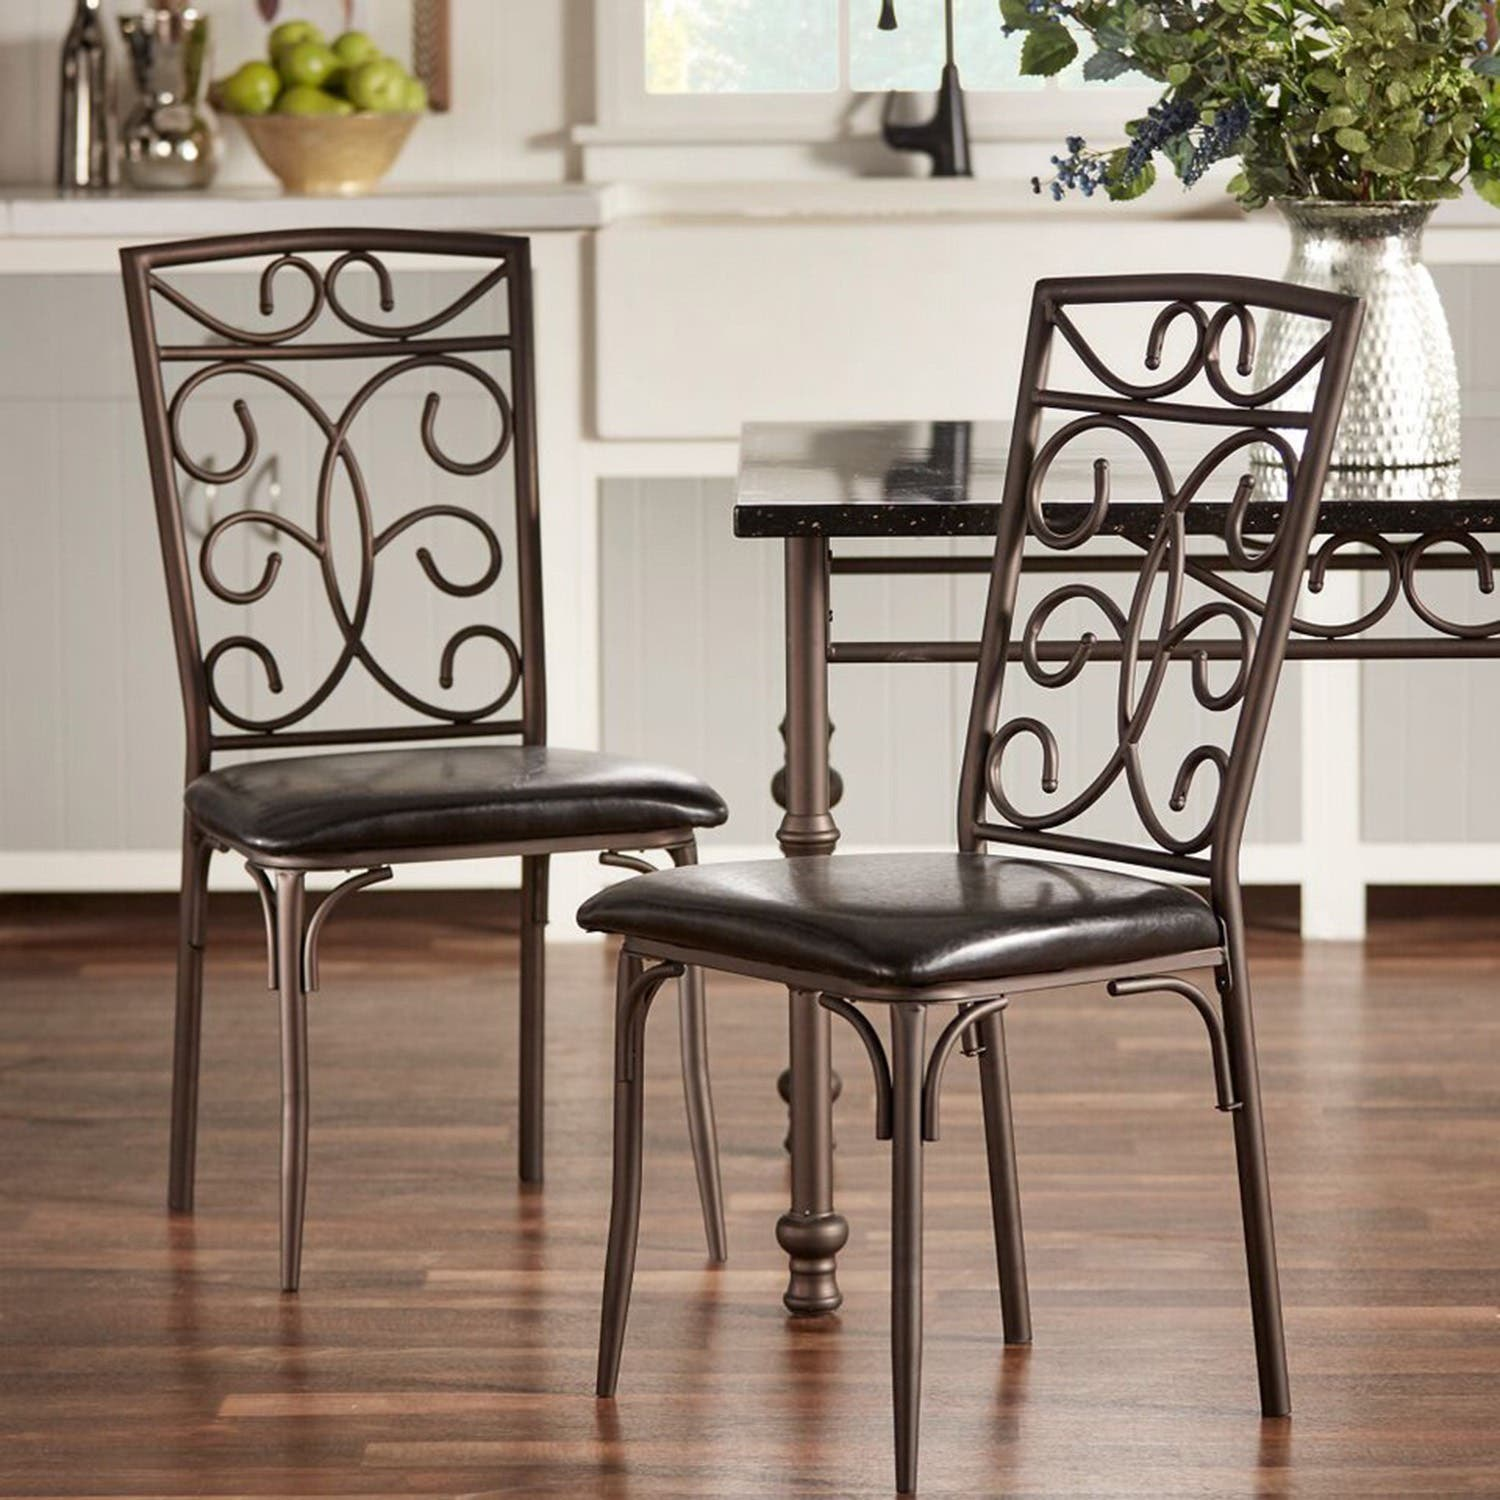 Set Of 4 Kitchen Chairs: Buy Kitchen & Dining Room Chairs Online At Overstock